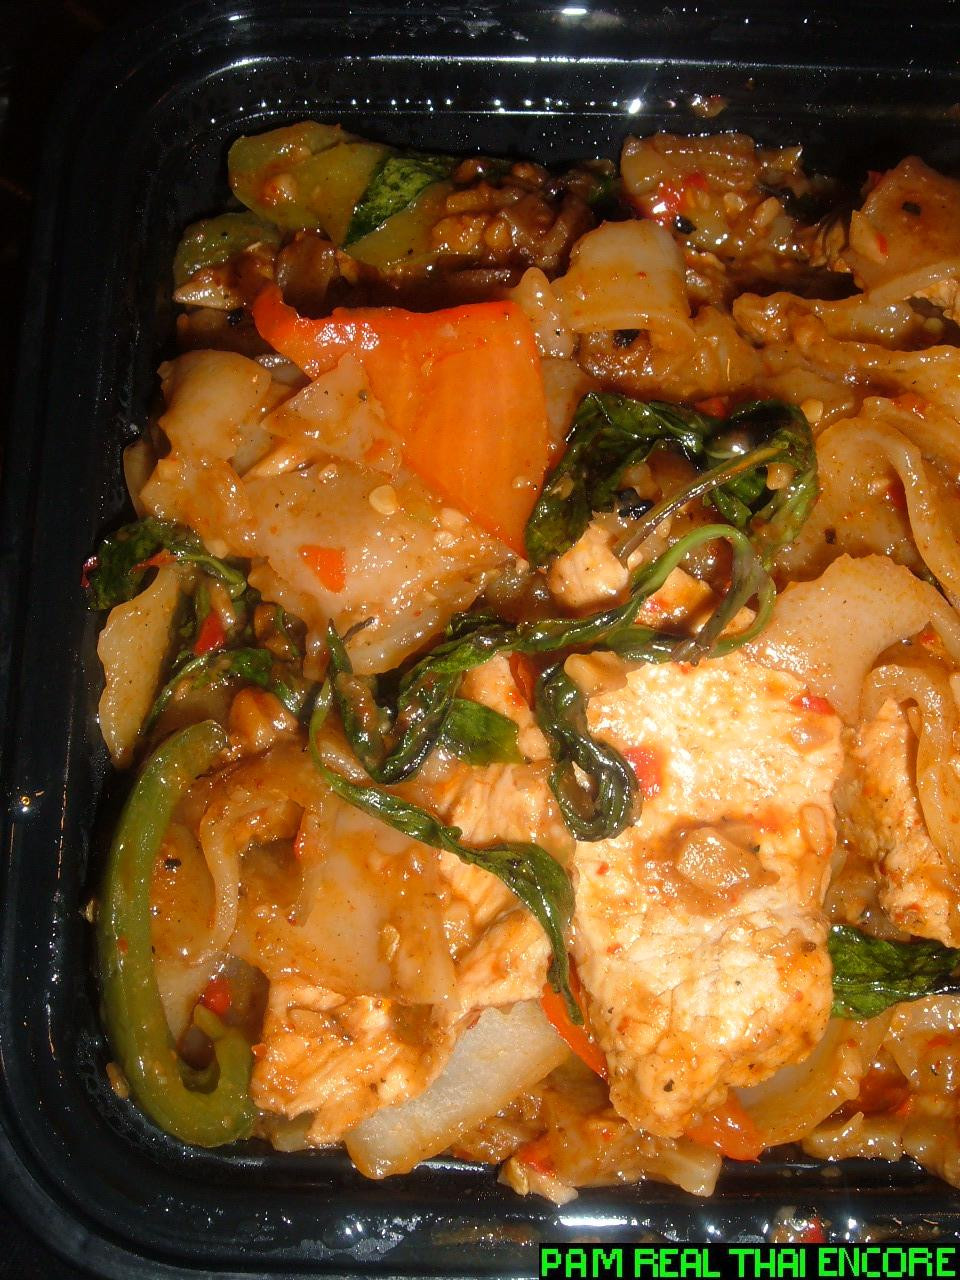 Drunken Noodles Vs Pad Thai  Midtown Drunken Noodle Showdown Topaz vs Pam Real Thai